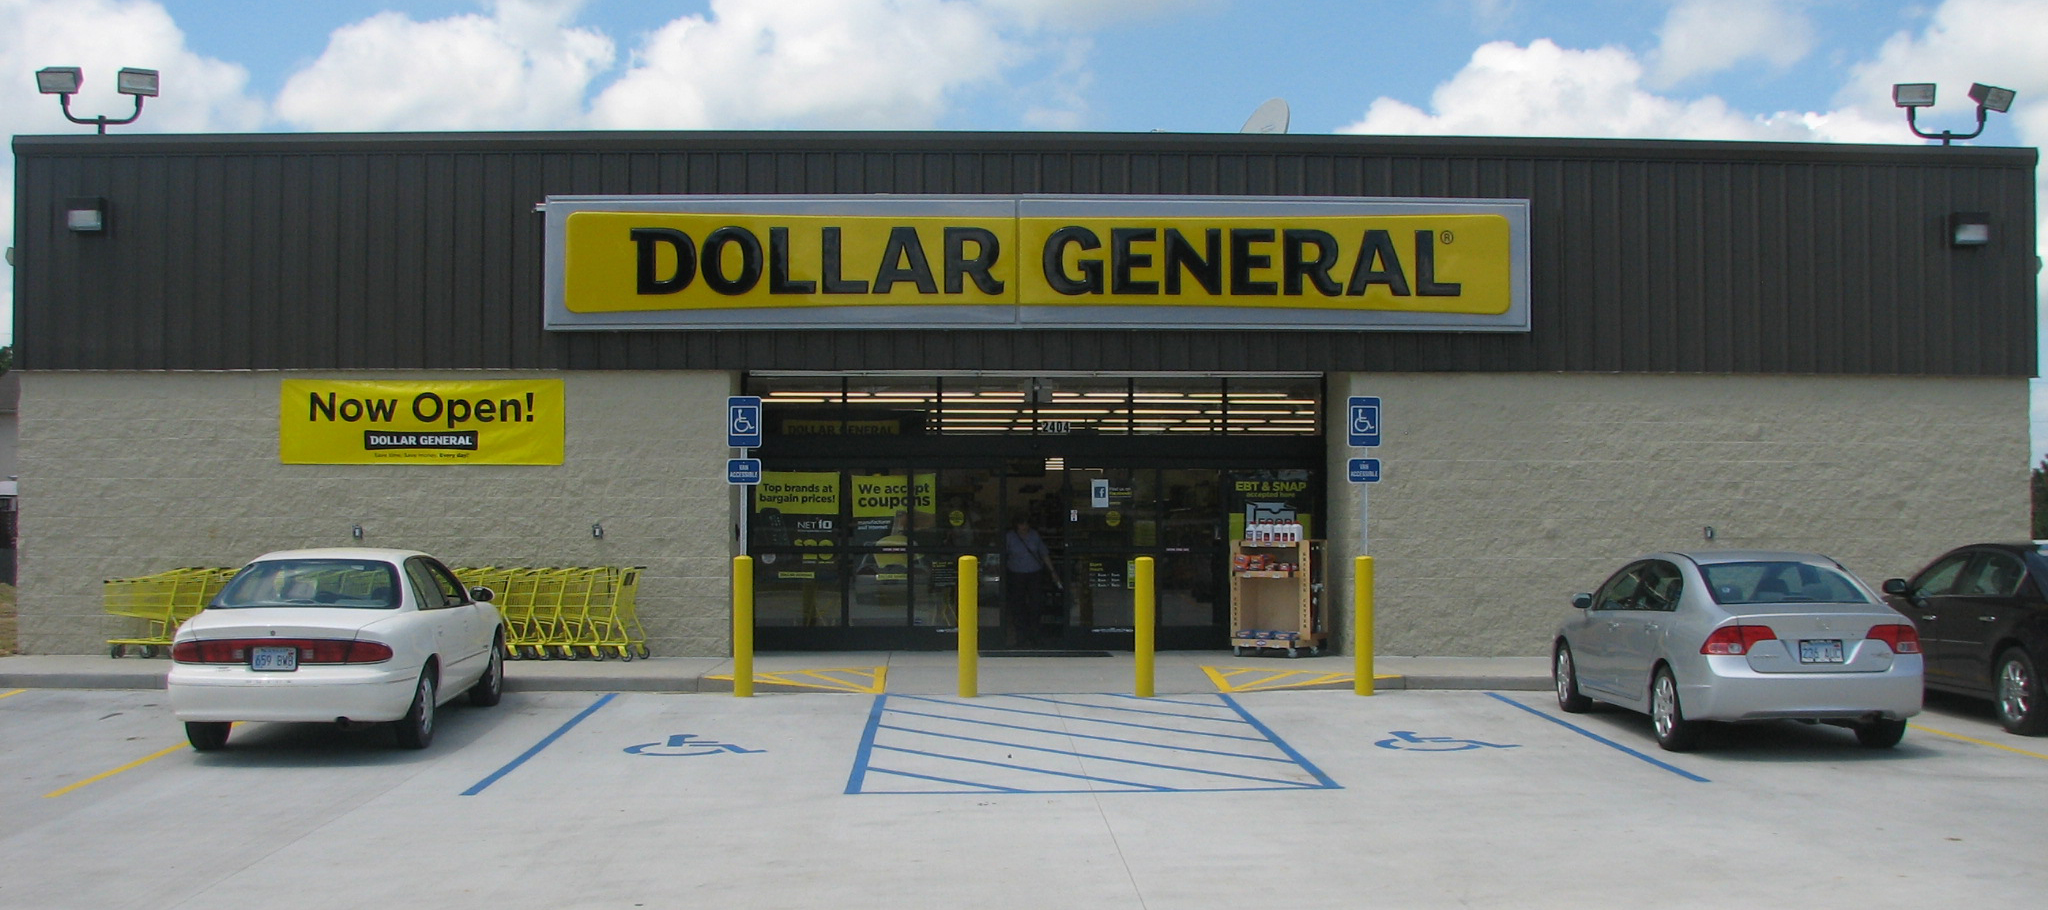 dollar general store Tang toh kang shop set up its business during the reign of king ramav the  family patriarch was mr toh kang sae tang the shop was named after him.